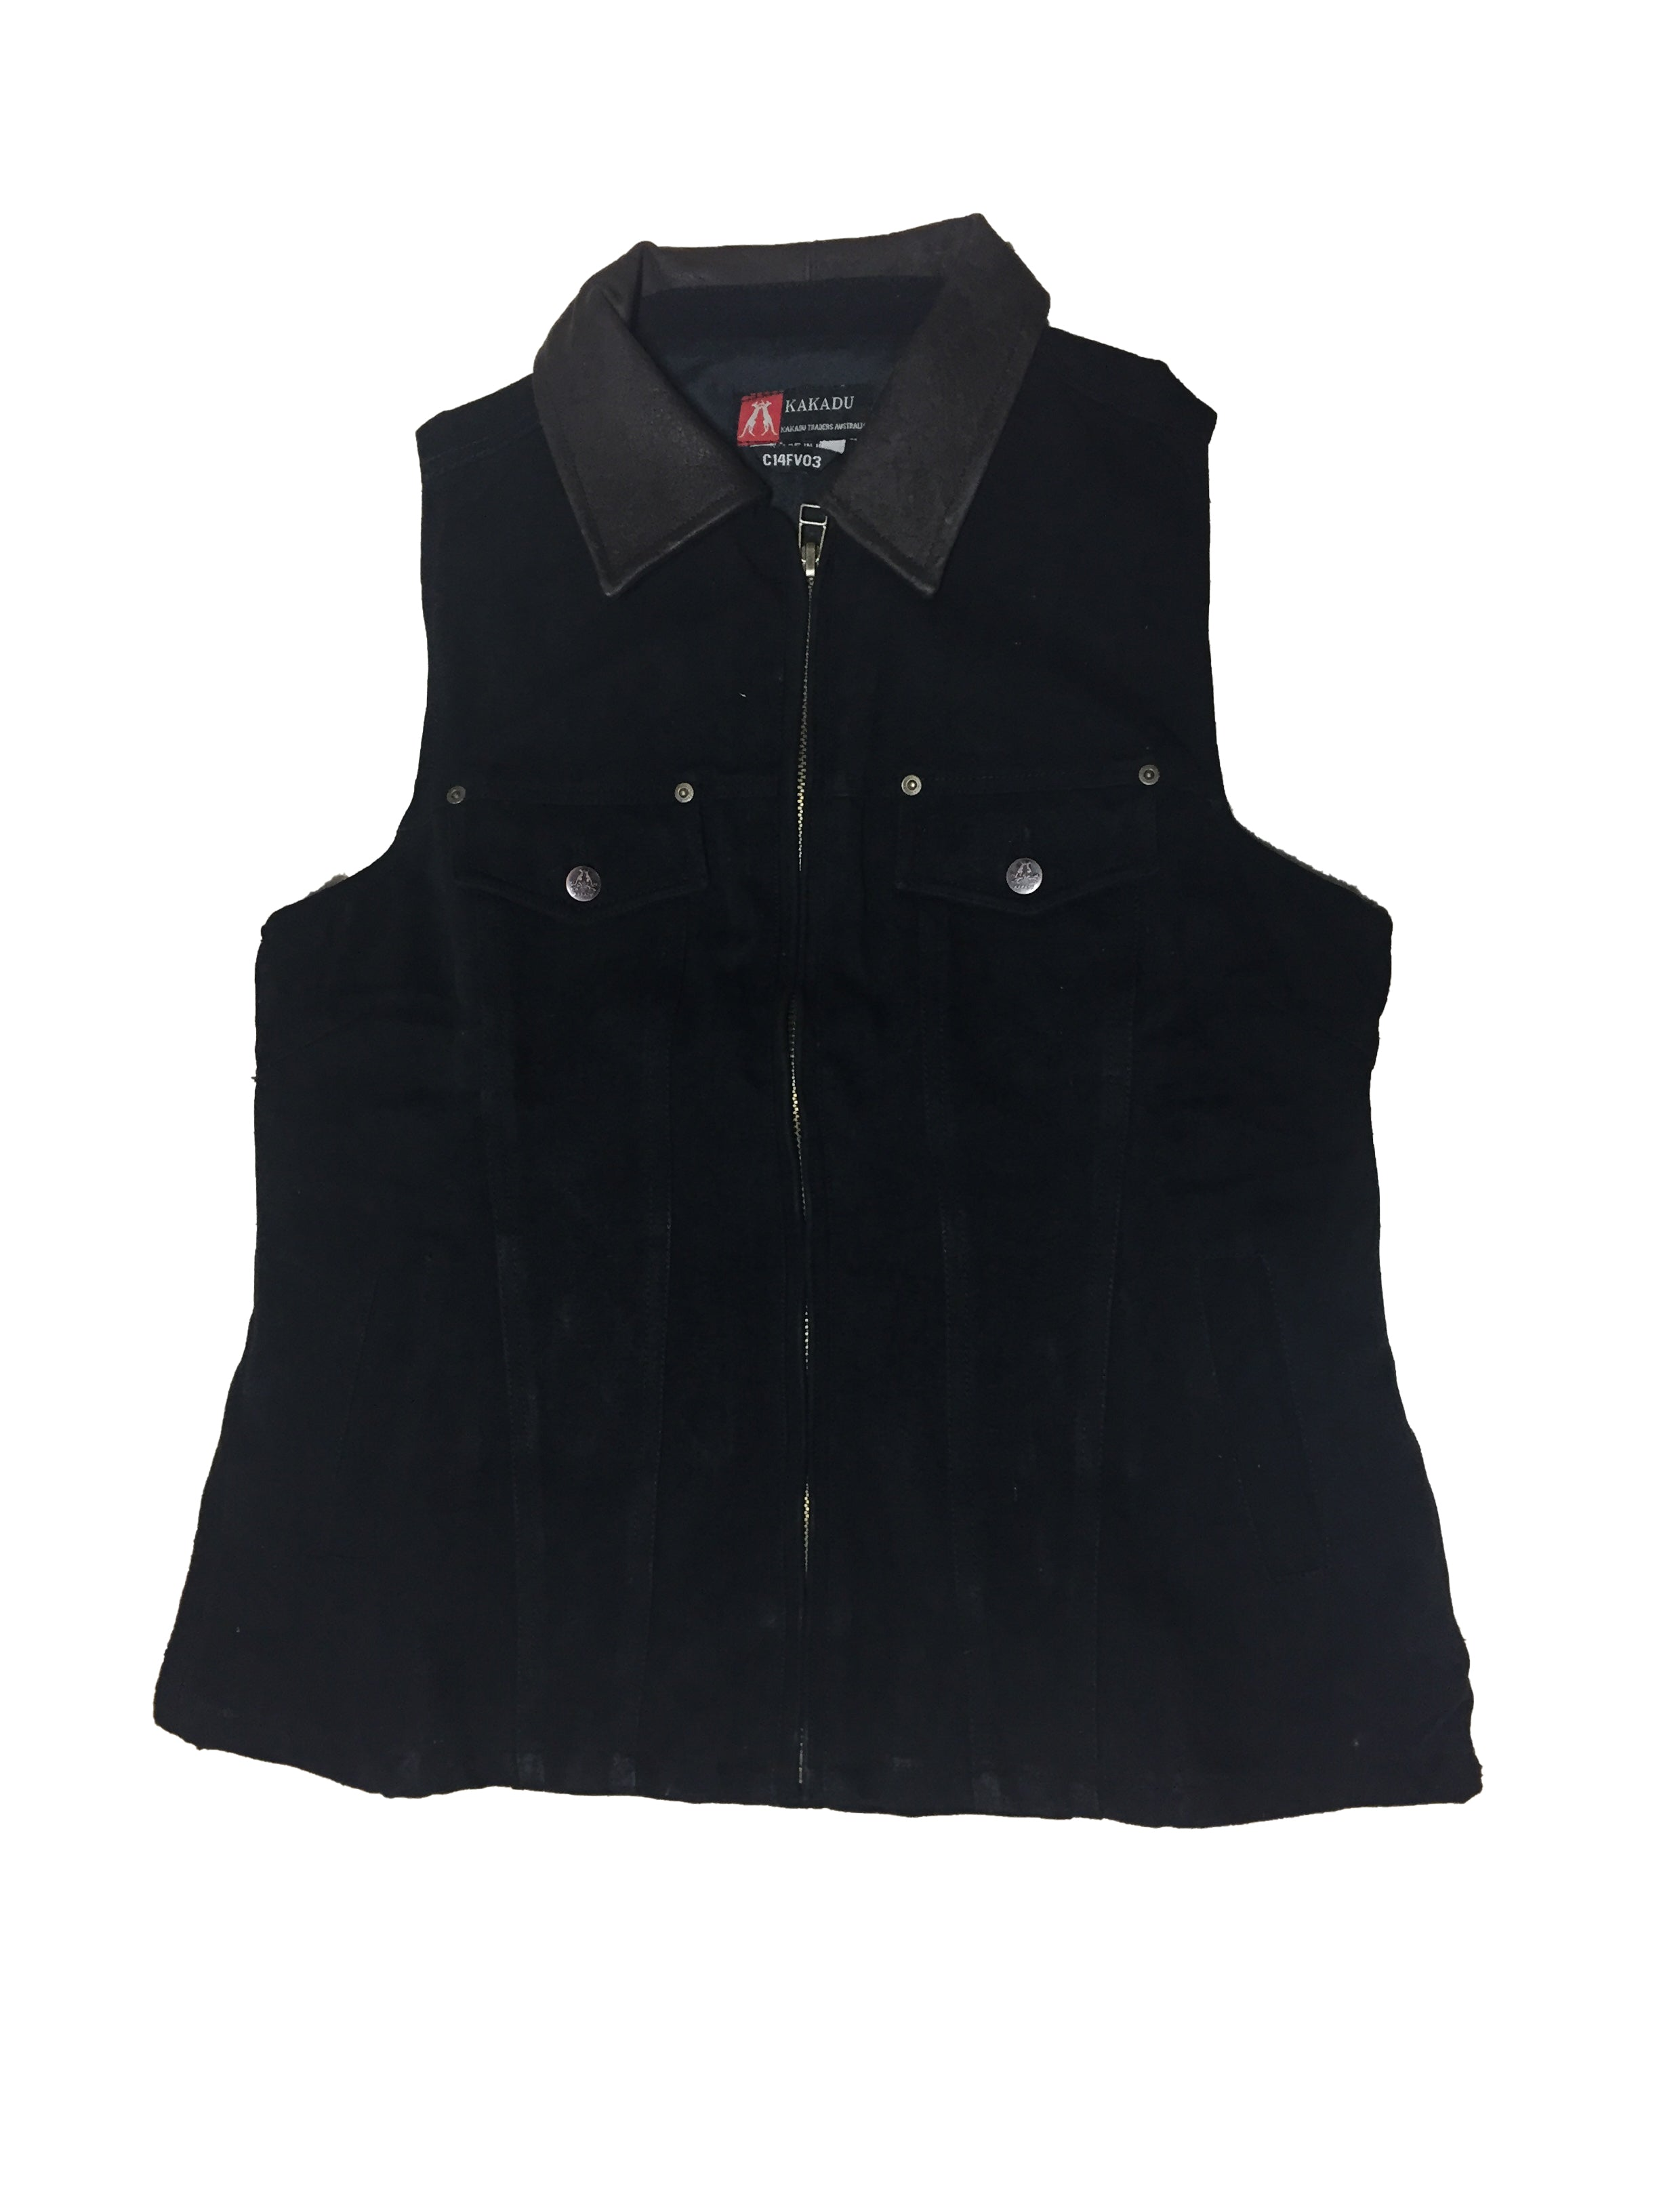 WOMEN'S THELMA VEST in Black